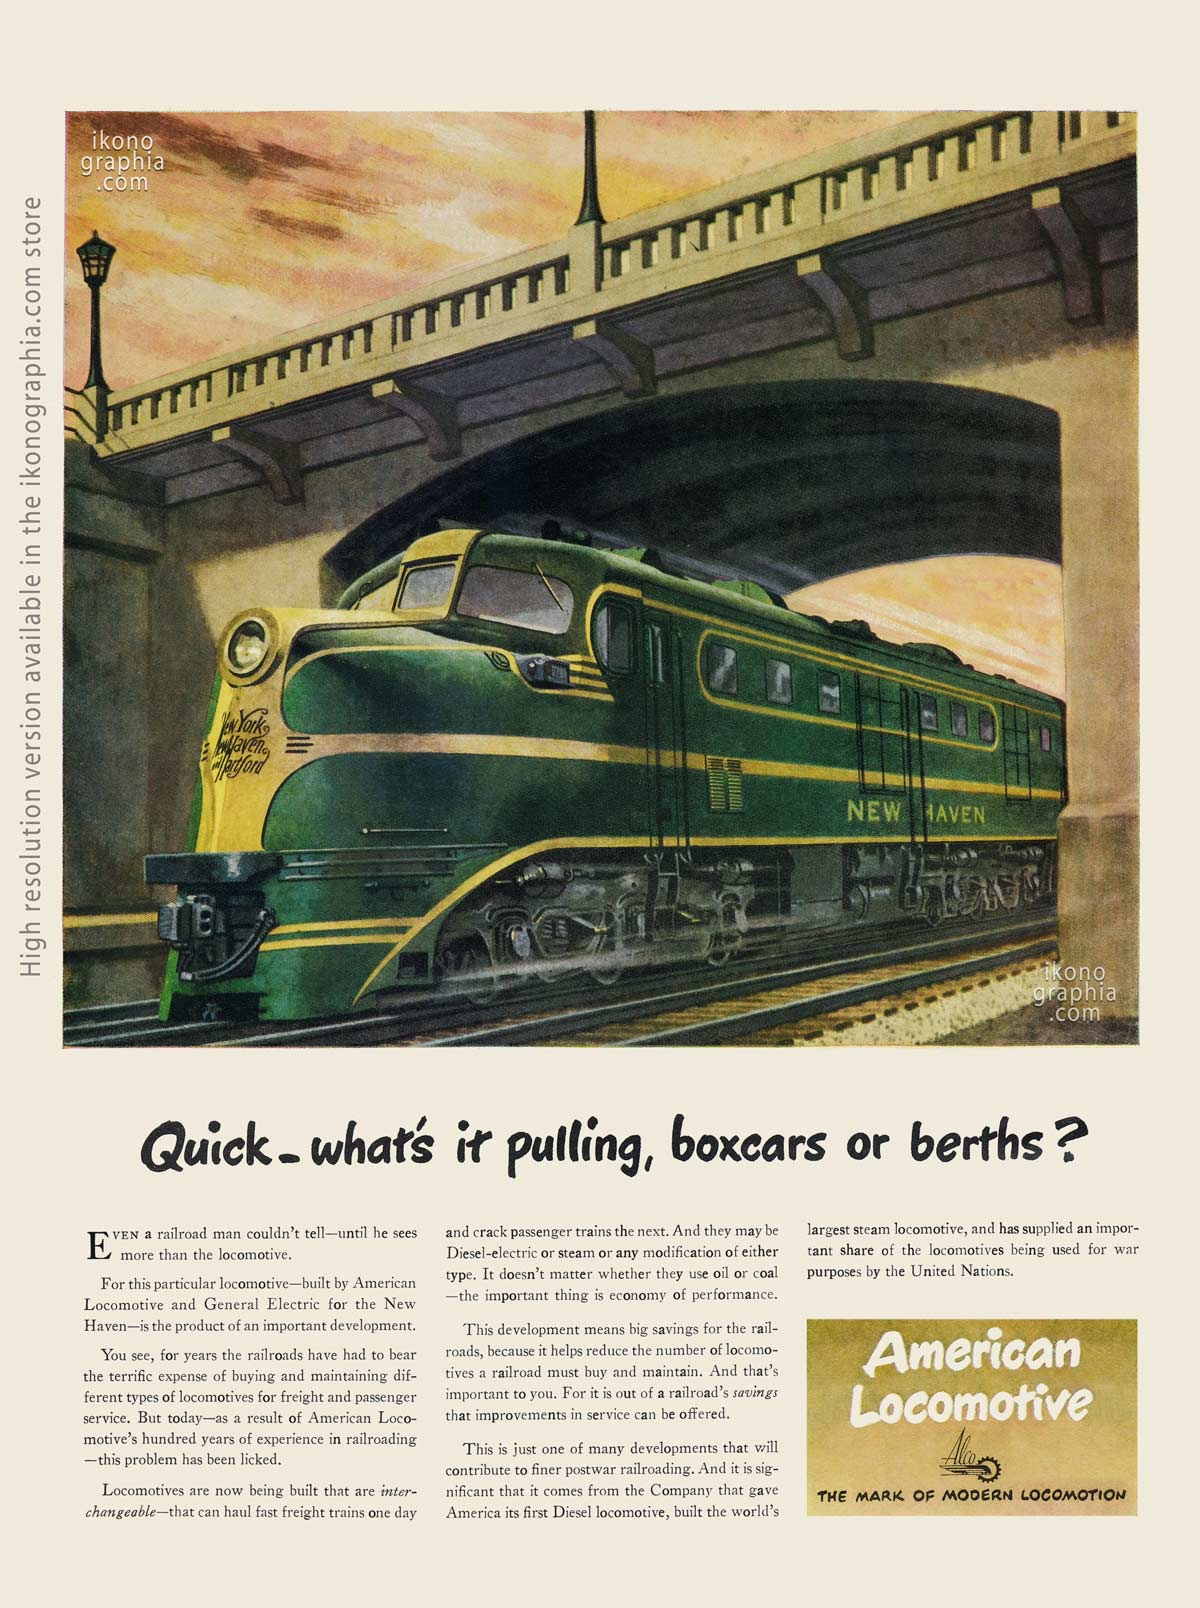 Quick - what's it pulling, boxcars or berths? - American Locomotive ad, artwork by Peter Helck - Life Magazine. April 16, 1945